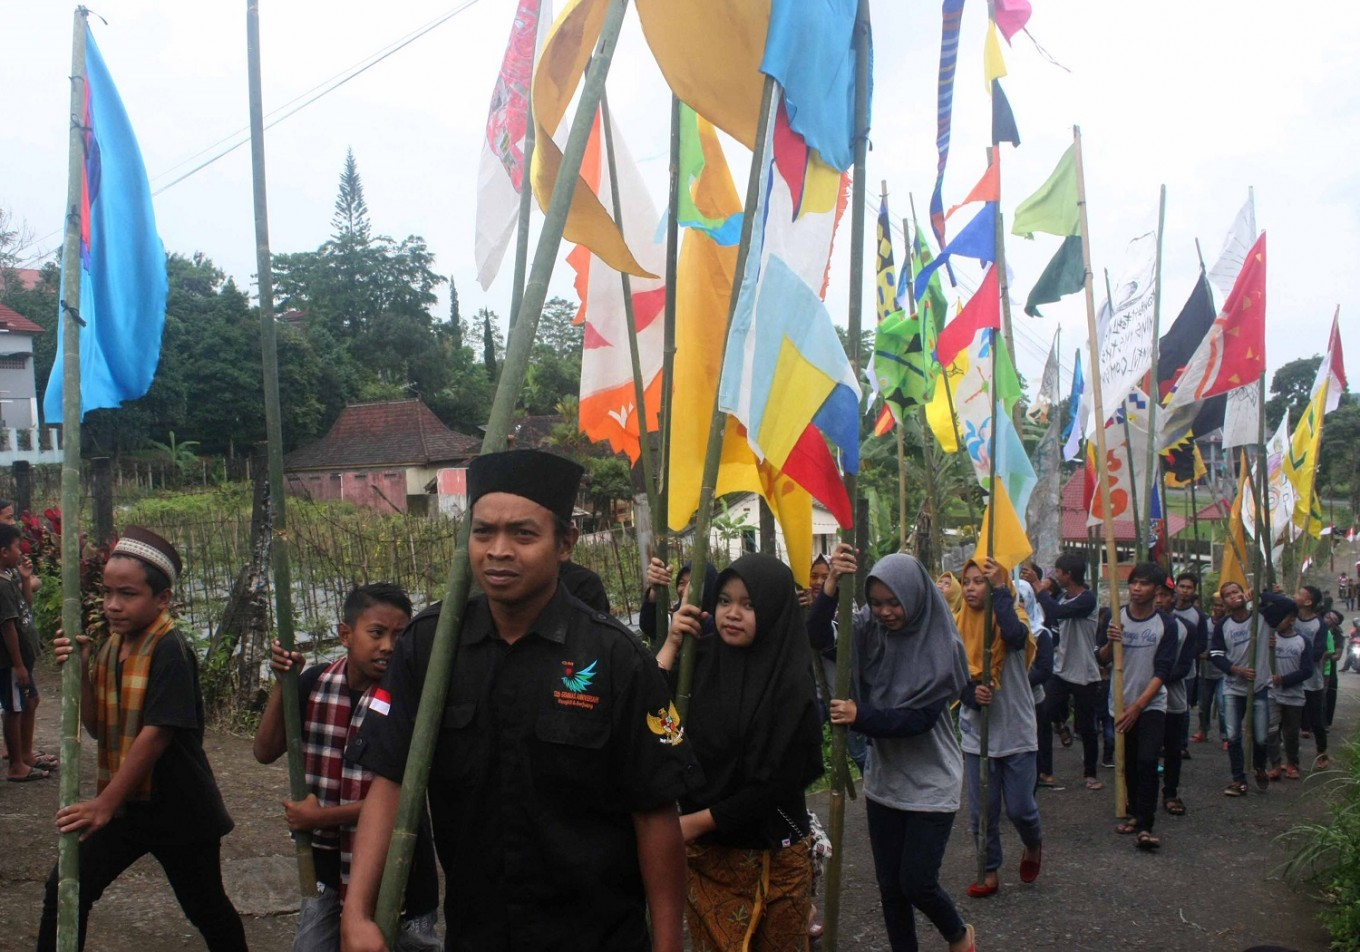 Gerdu village residents participate in a flag parade.